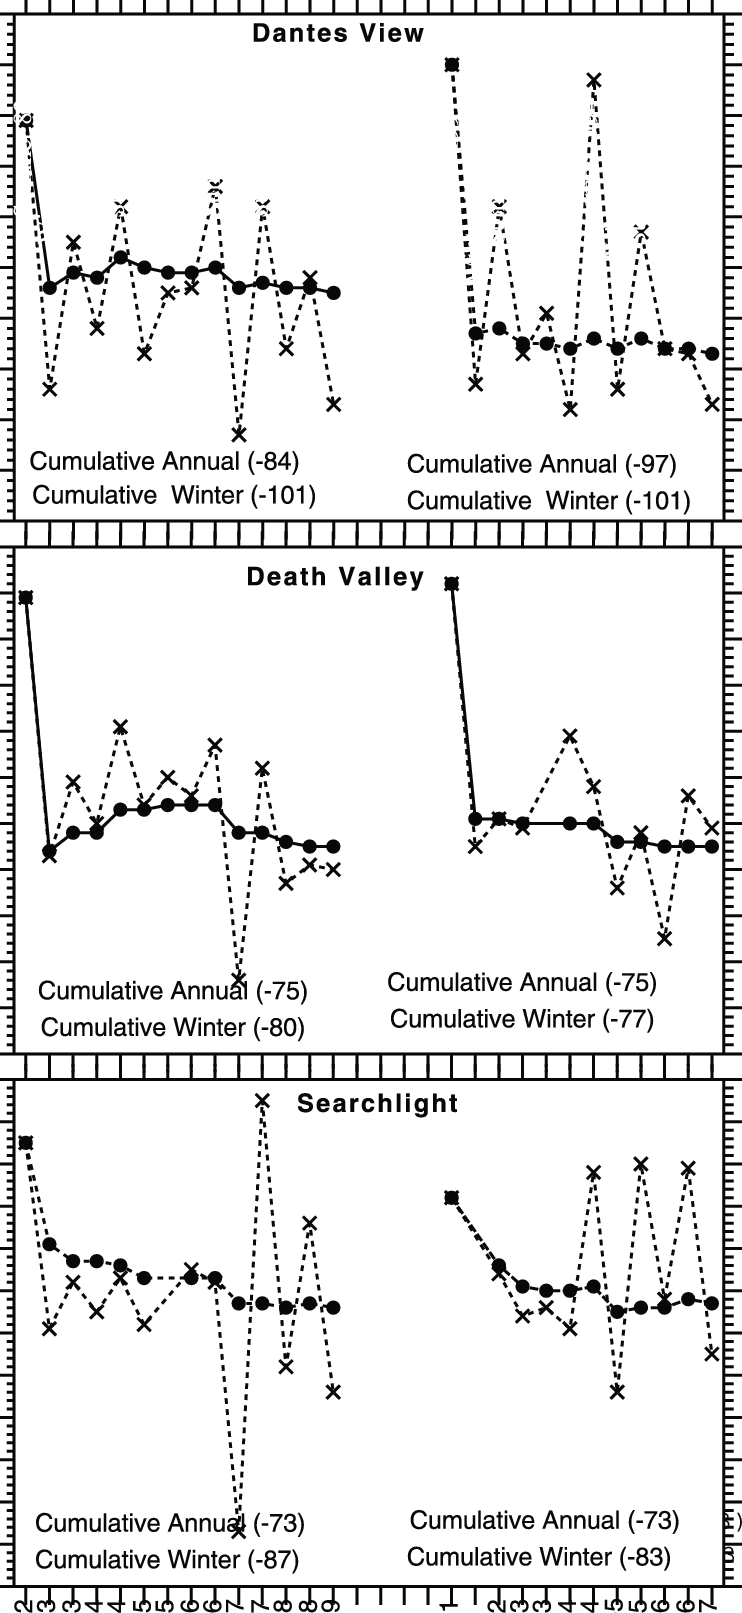 hight resolution of same as figure 3 but for dantes view death valley and searchlight diagram of dantes view